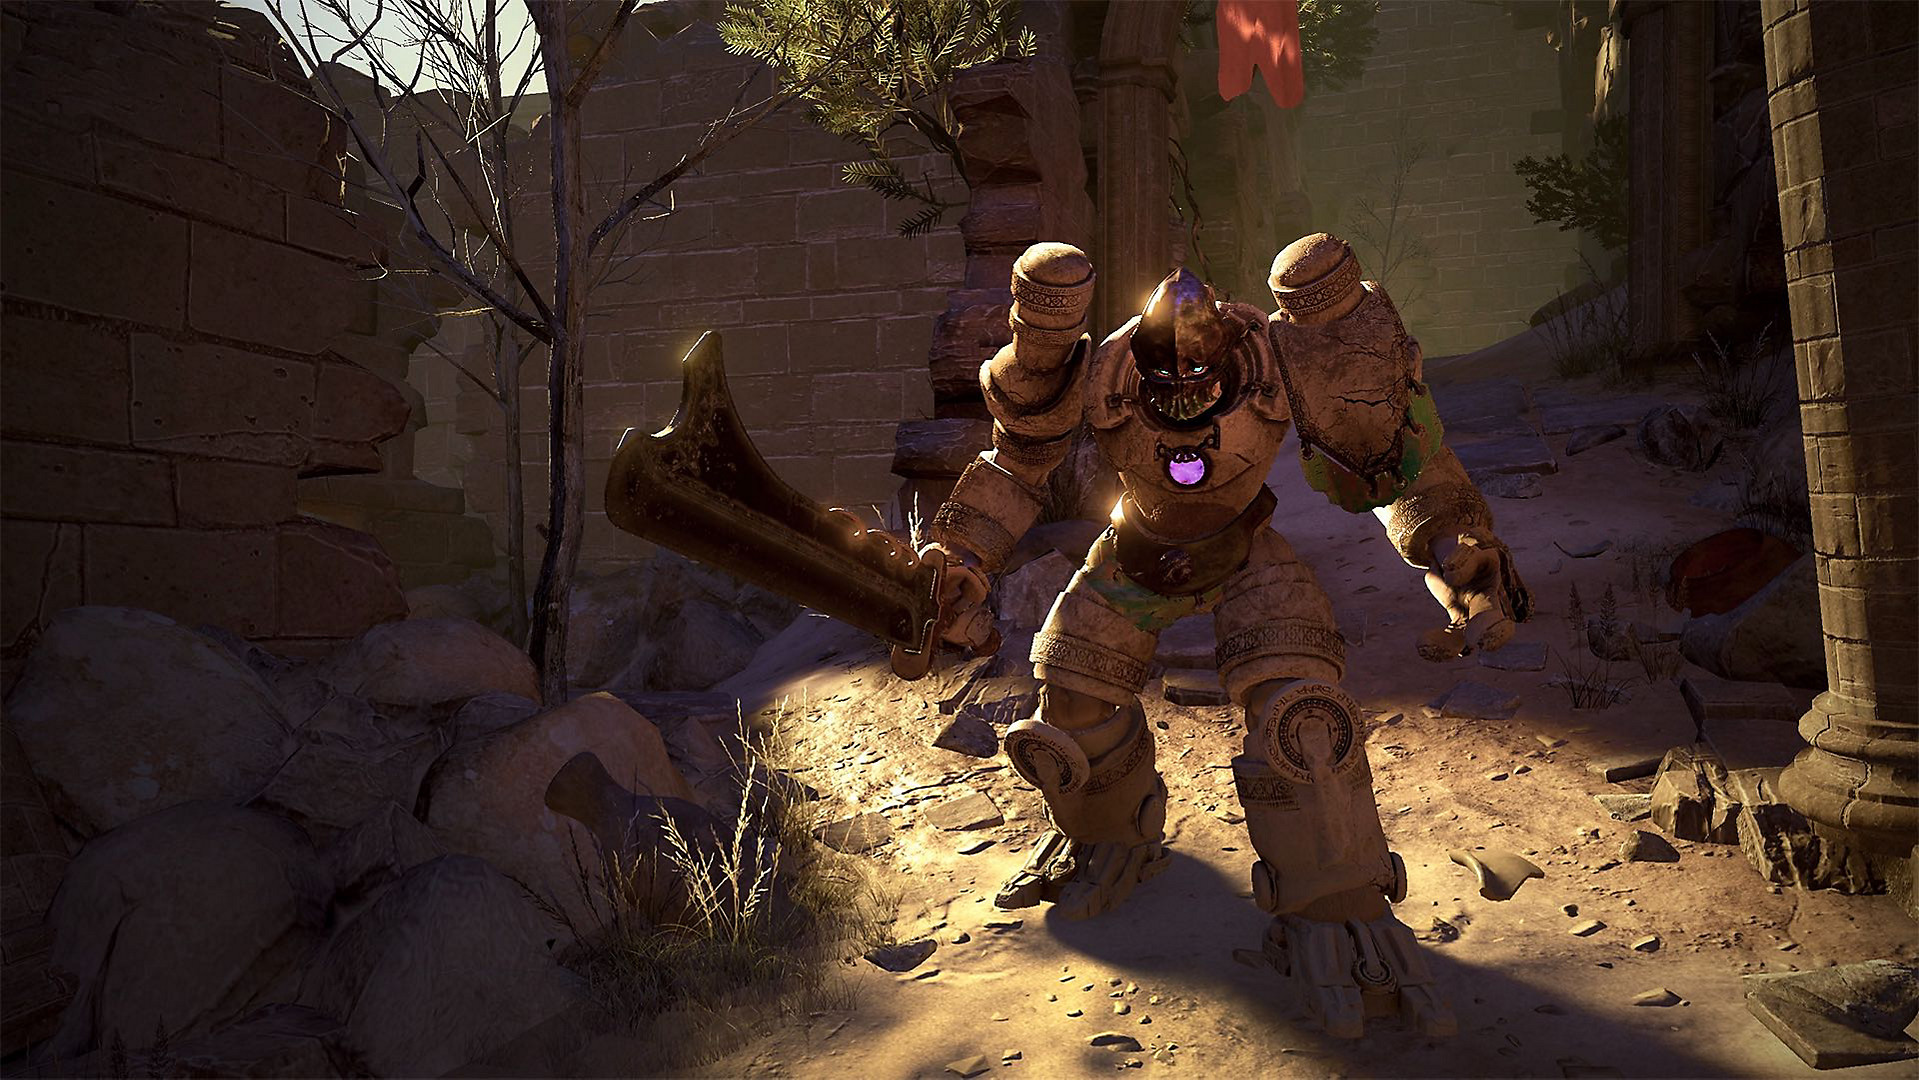 Golem review: a VR game too painful to finish